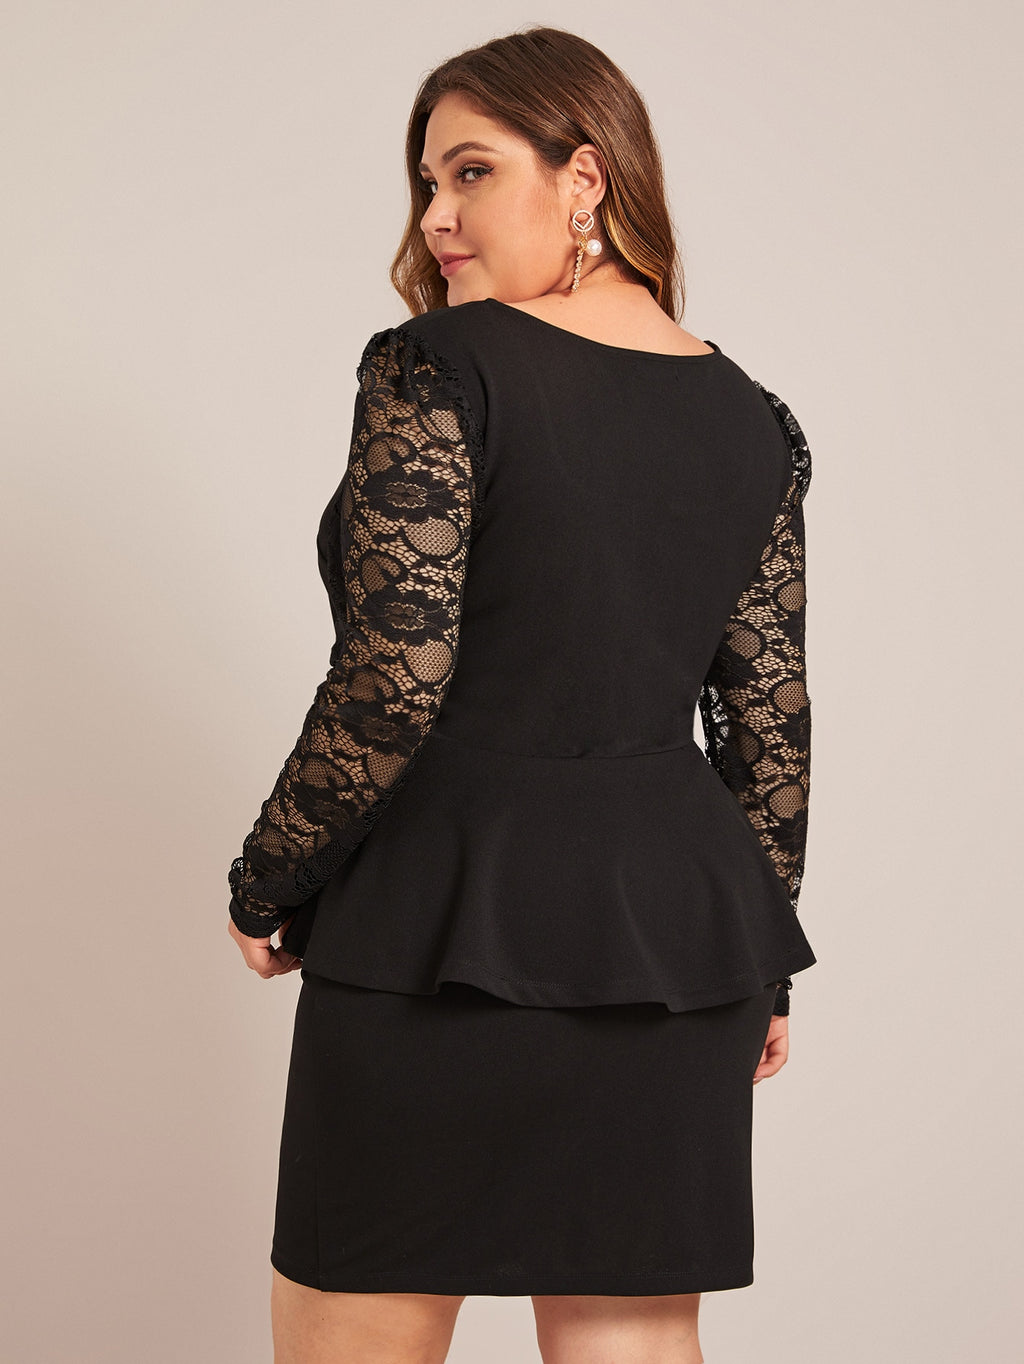 Plus Size Sleek Lace Sleeve Peplum Top & Skirt Set